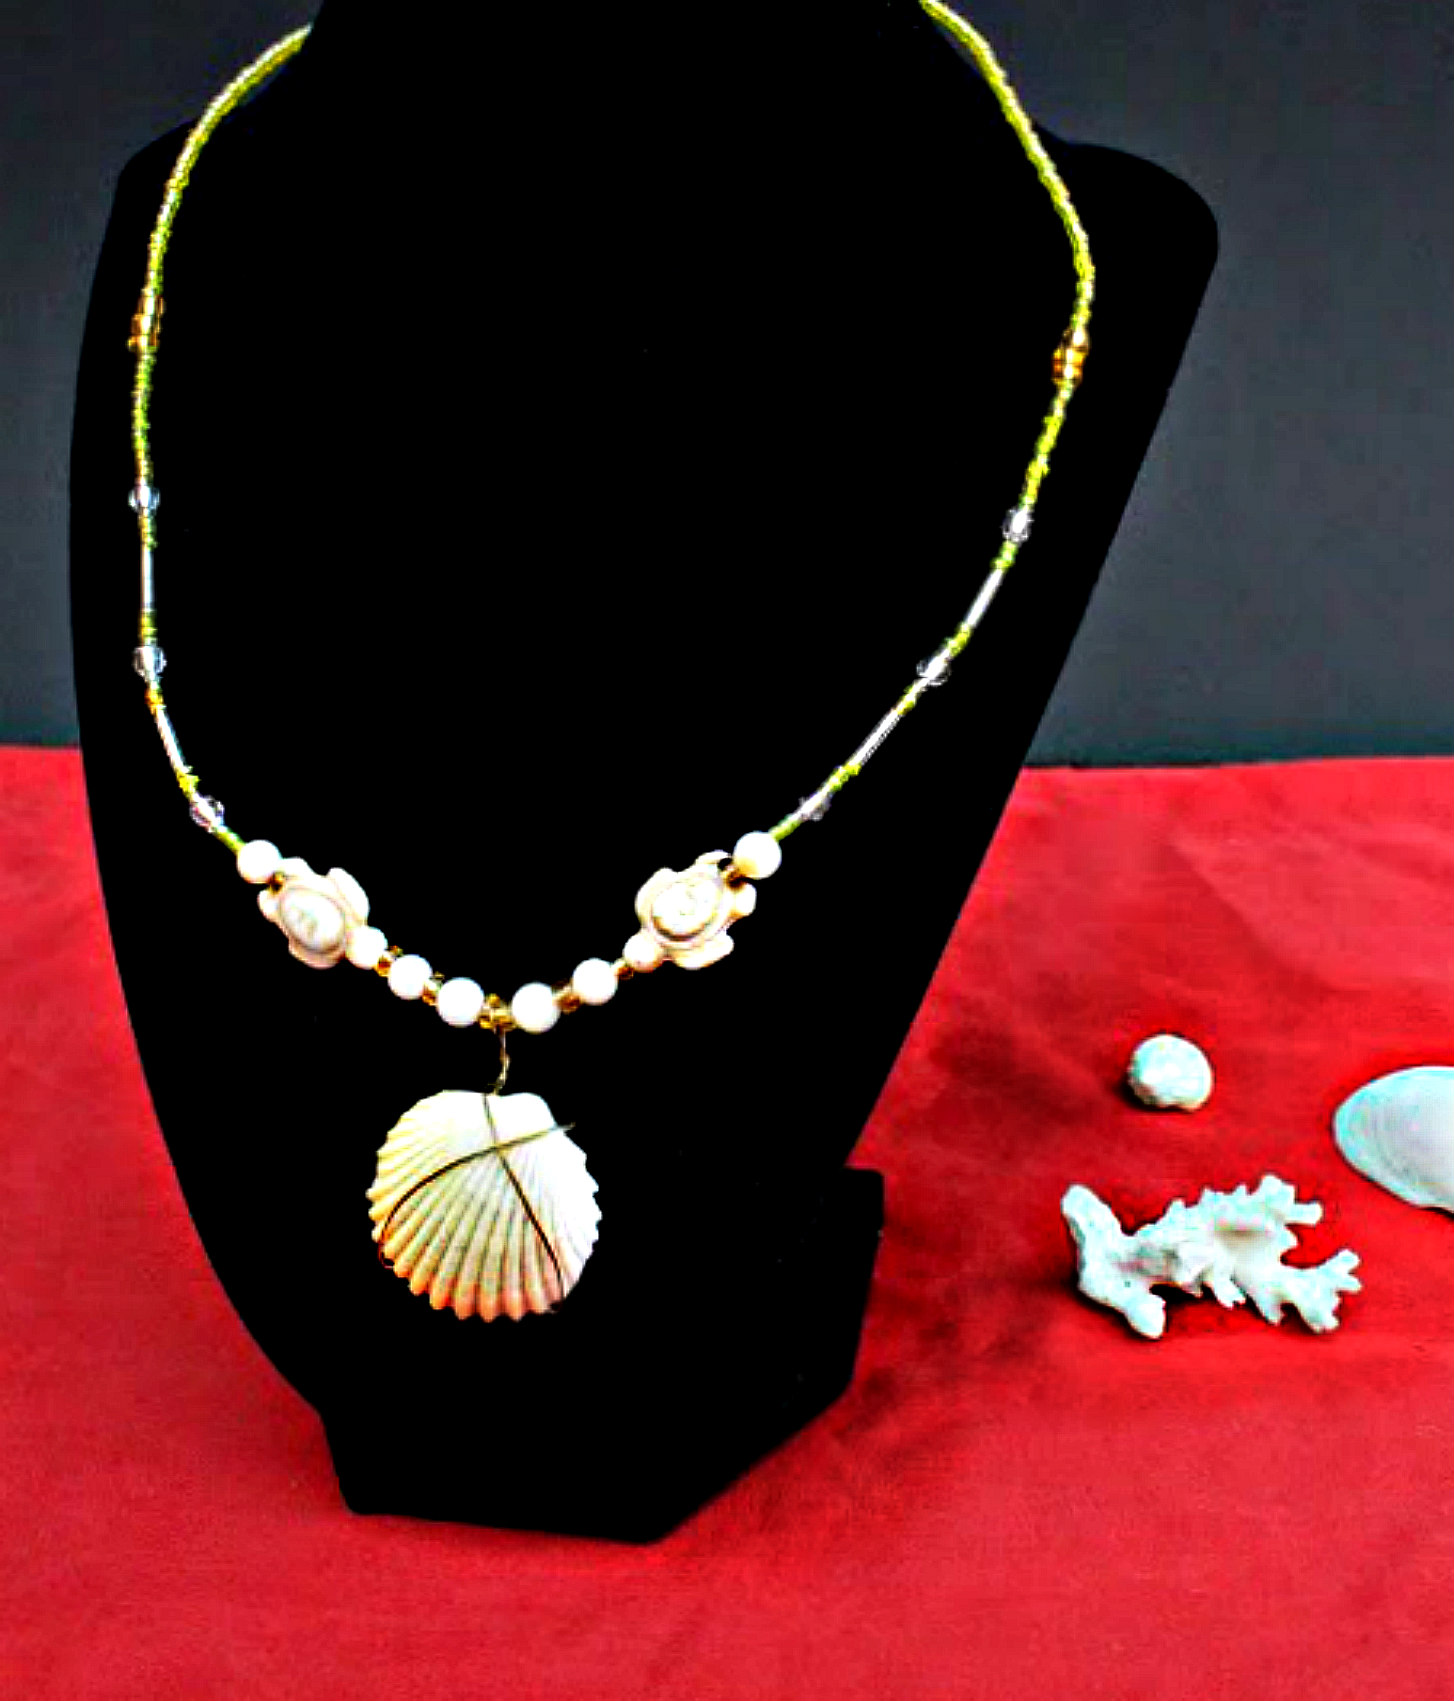 Necklace $25 Eddie Raines 2016 Shell, coral and beads with copper wire